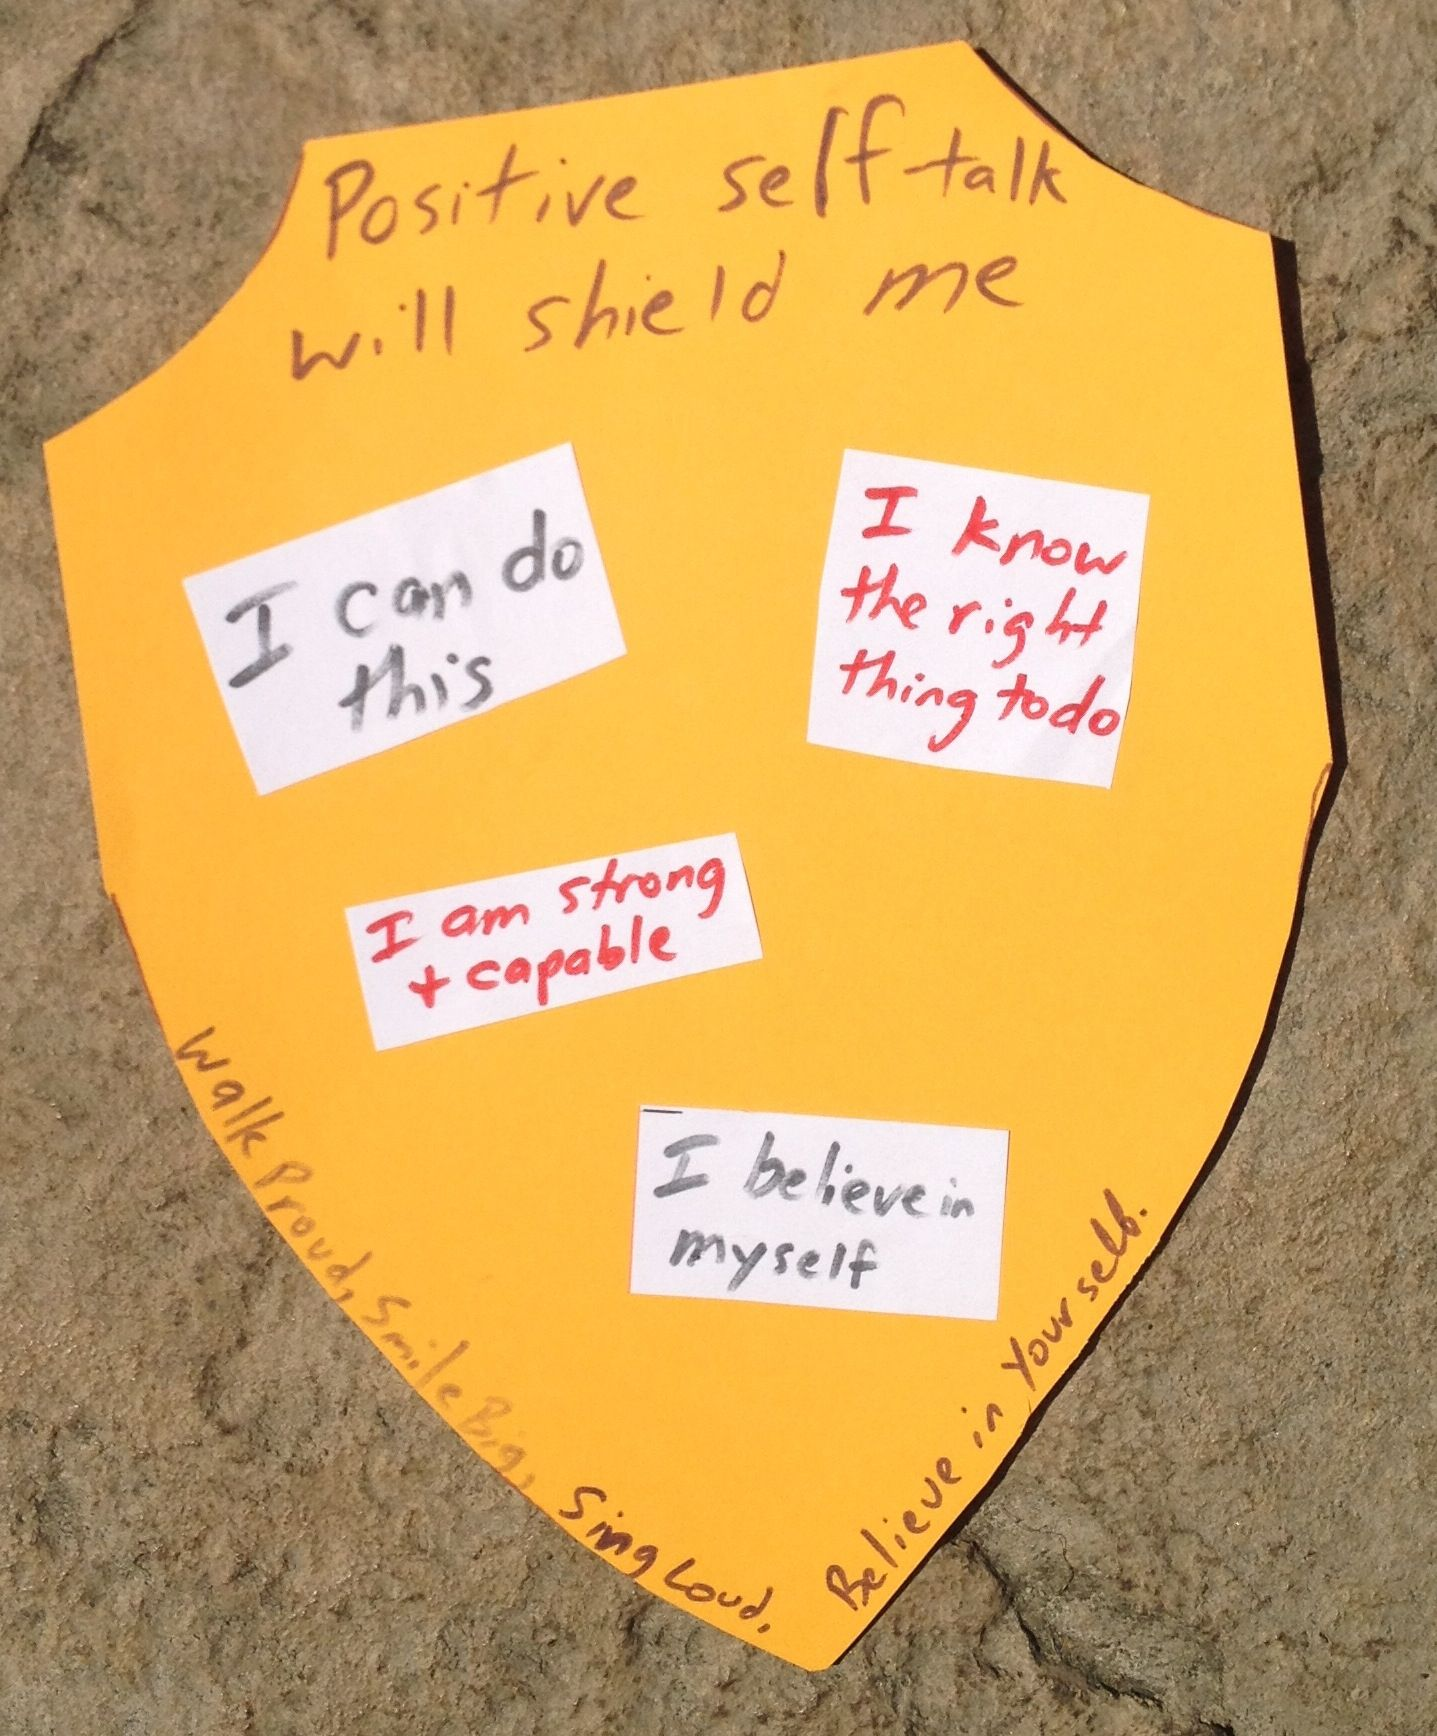 Positive Self Talk Shield Could Also Do Assertive Statements Or Ways To Respond To Teasing